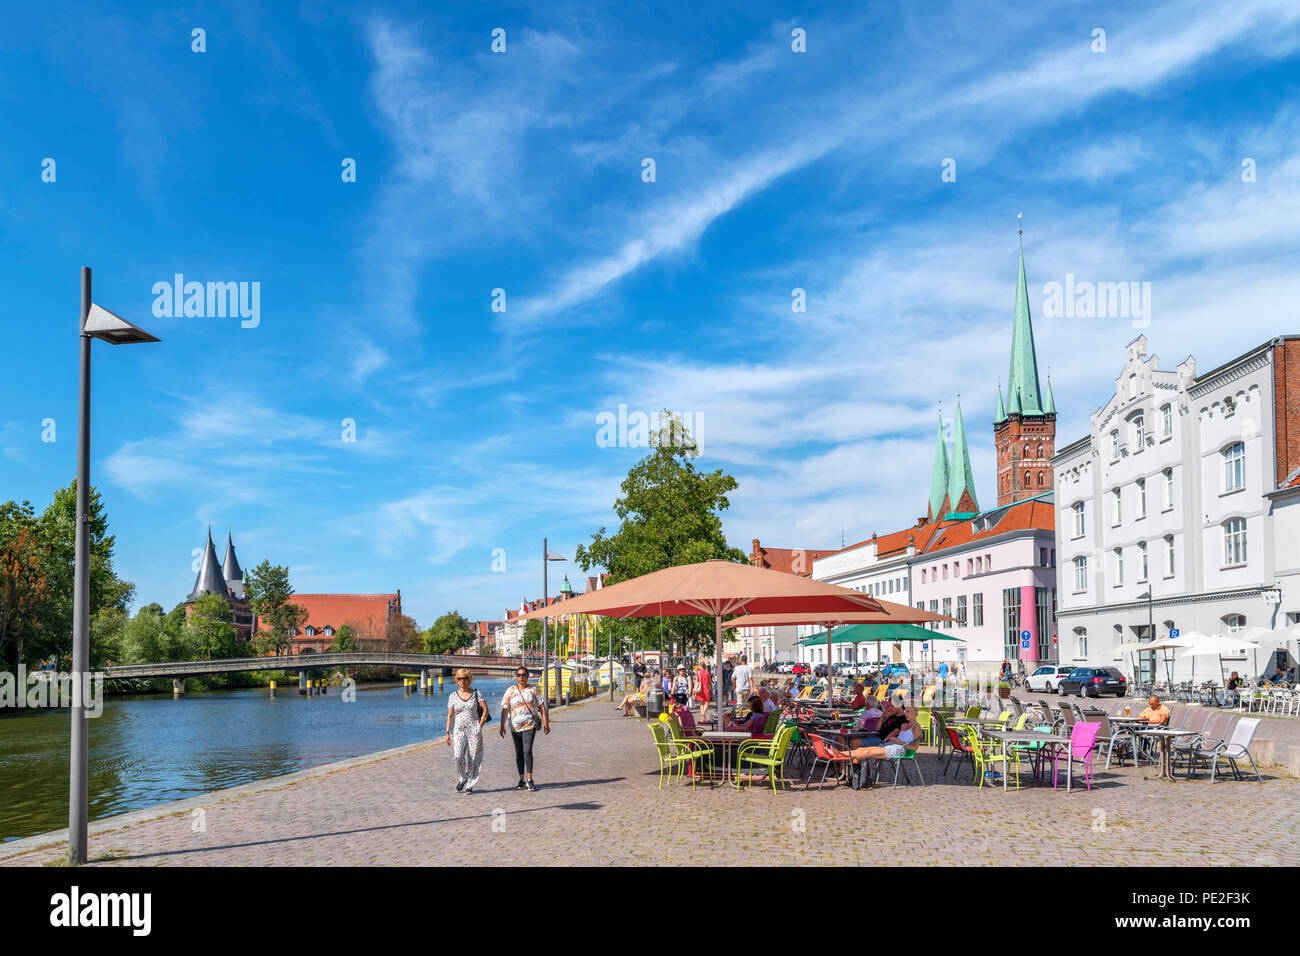 Sidewalk cafe on the banks of the River Trave, Lubeck, Schleswig-Holstein, Germany - Stock Image